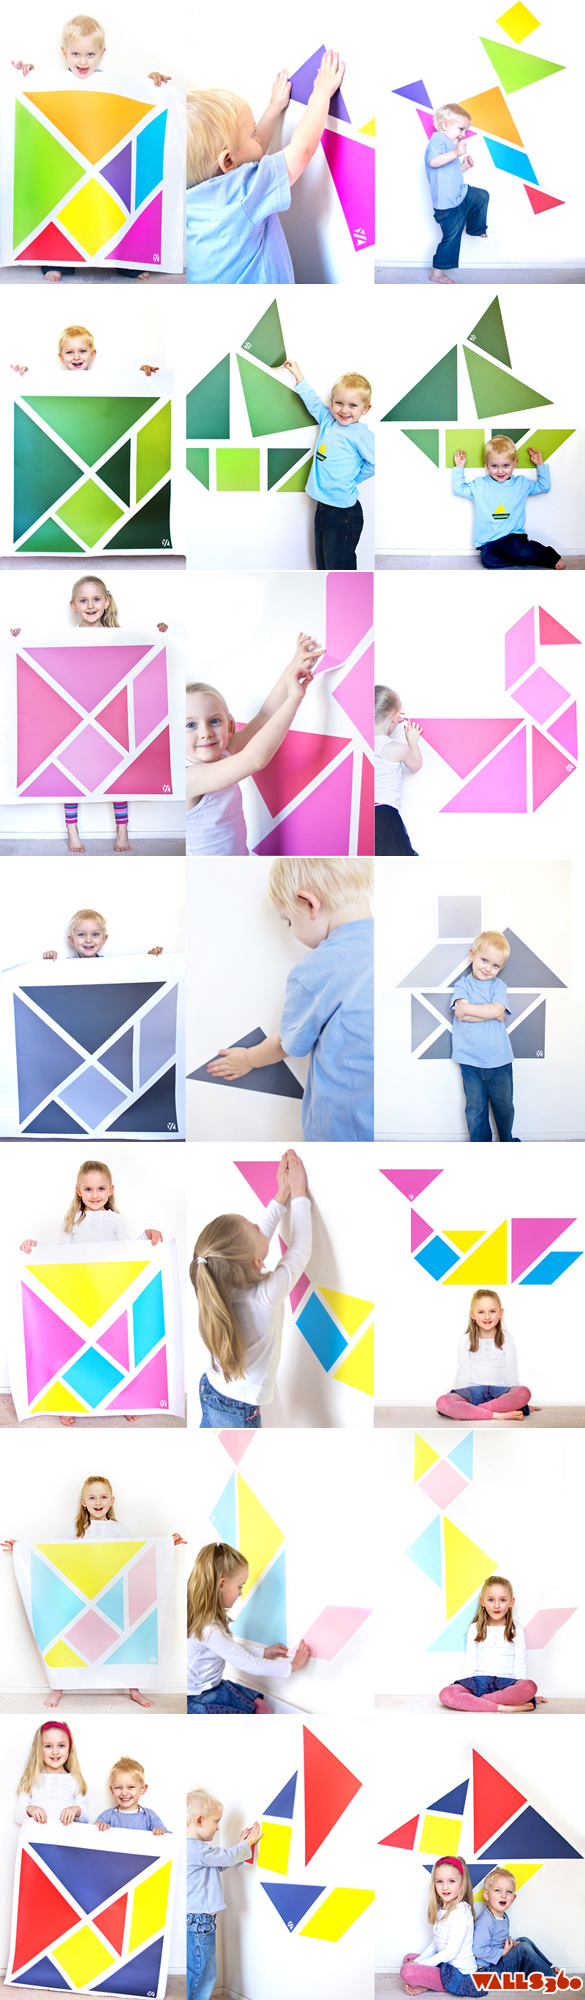 Wall Tangrams: Open Source Lesson Plans!